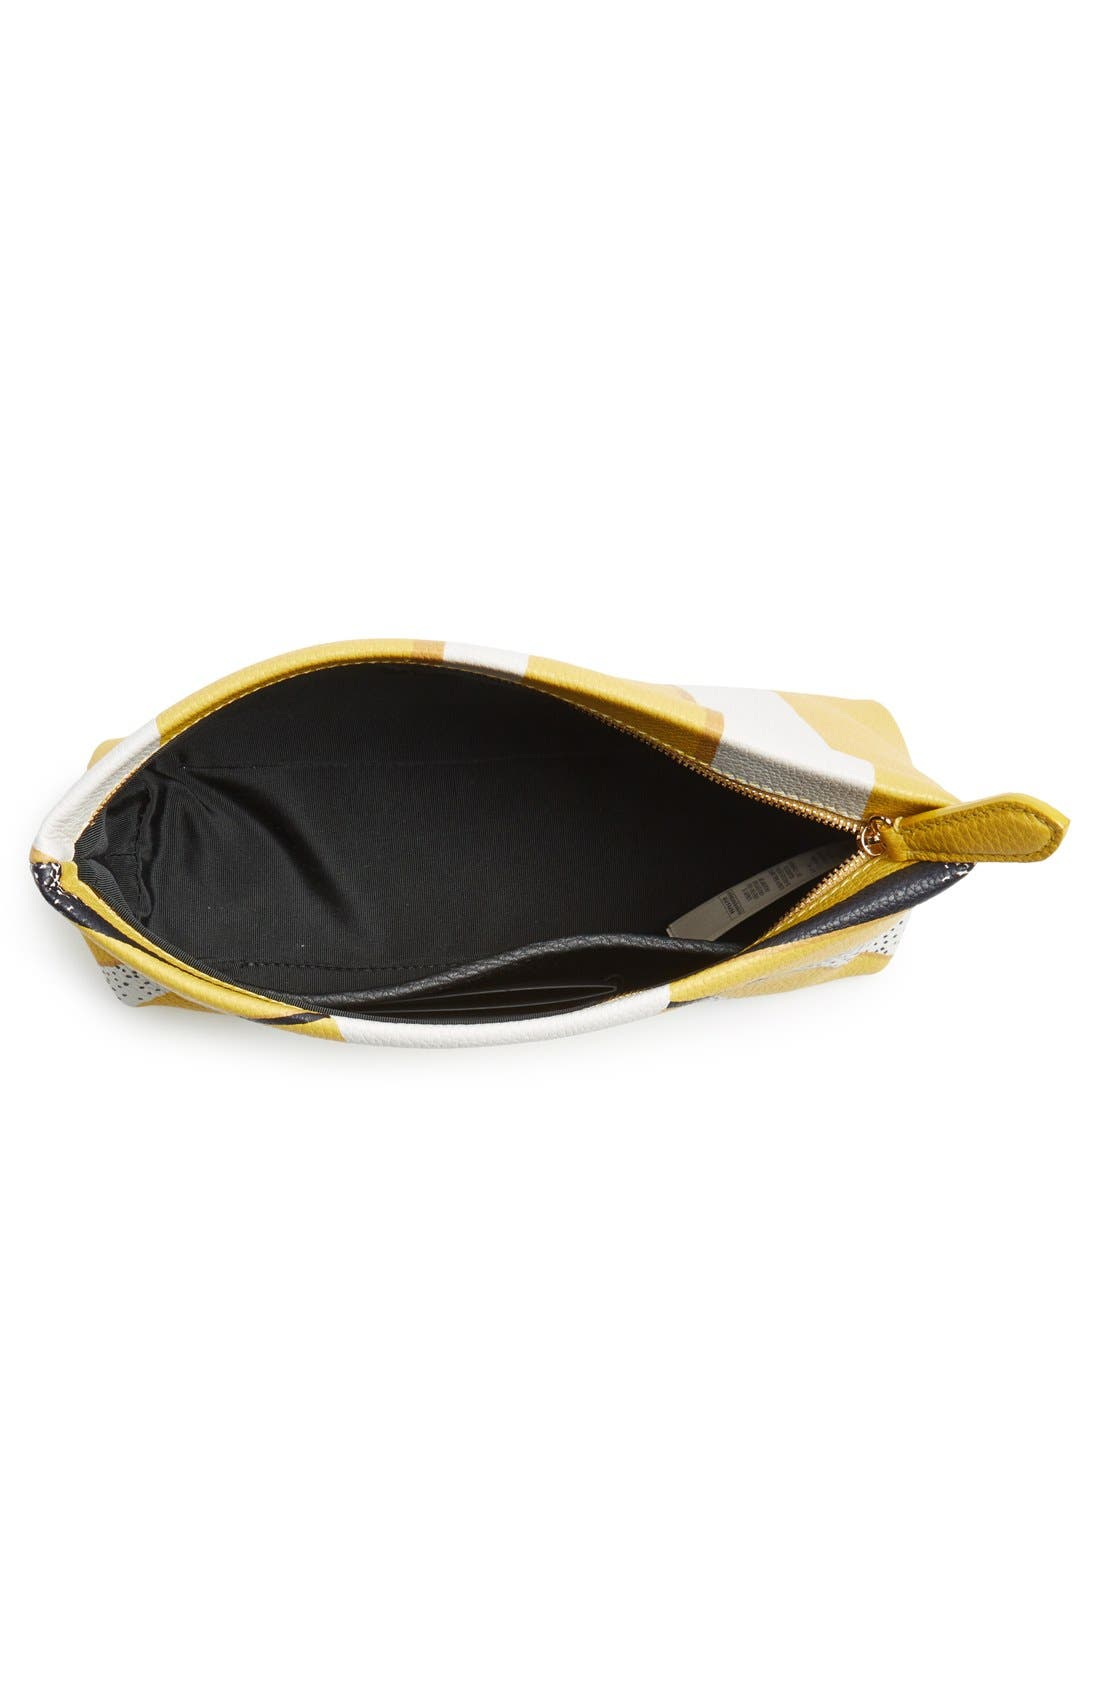 Alternate Image 4  - Burberry Leather Clutch